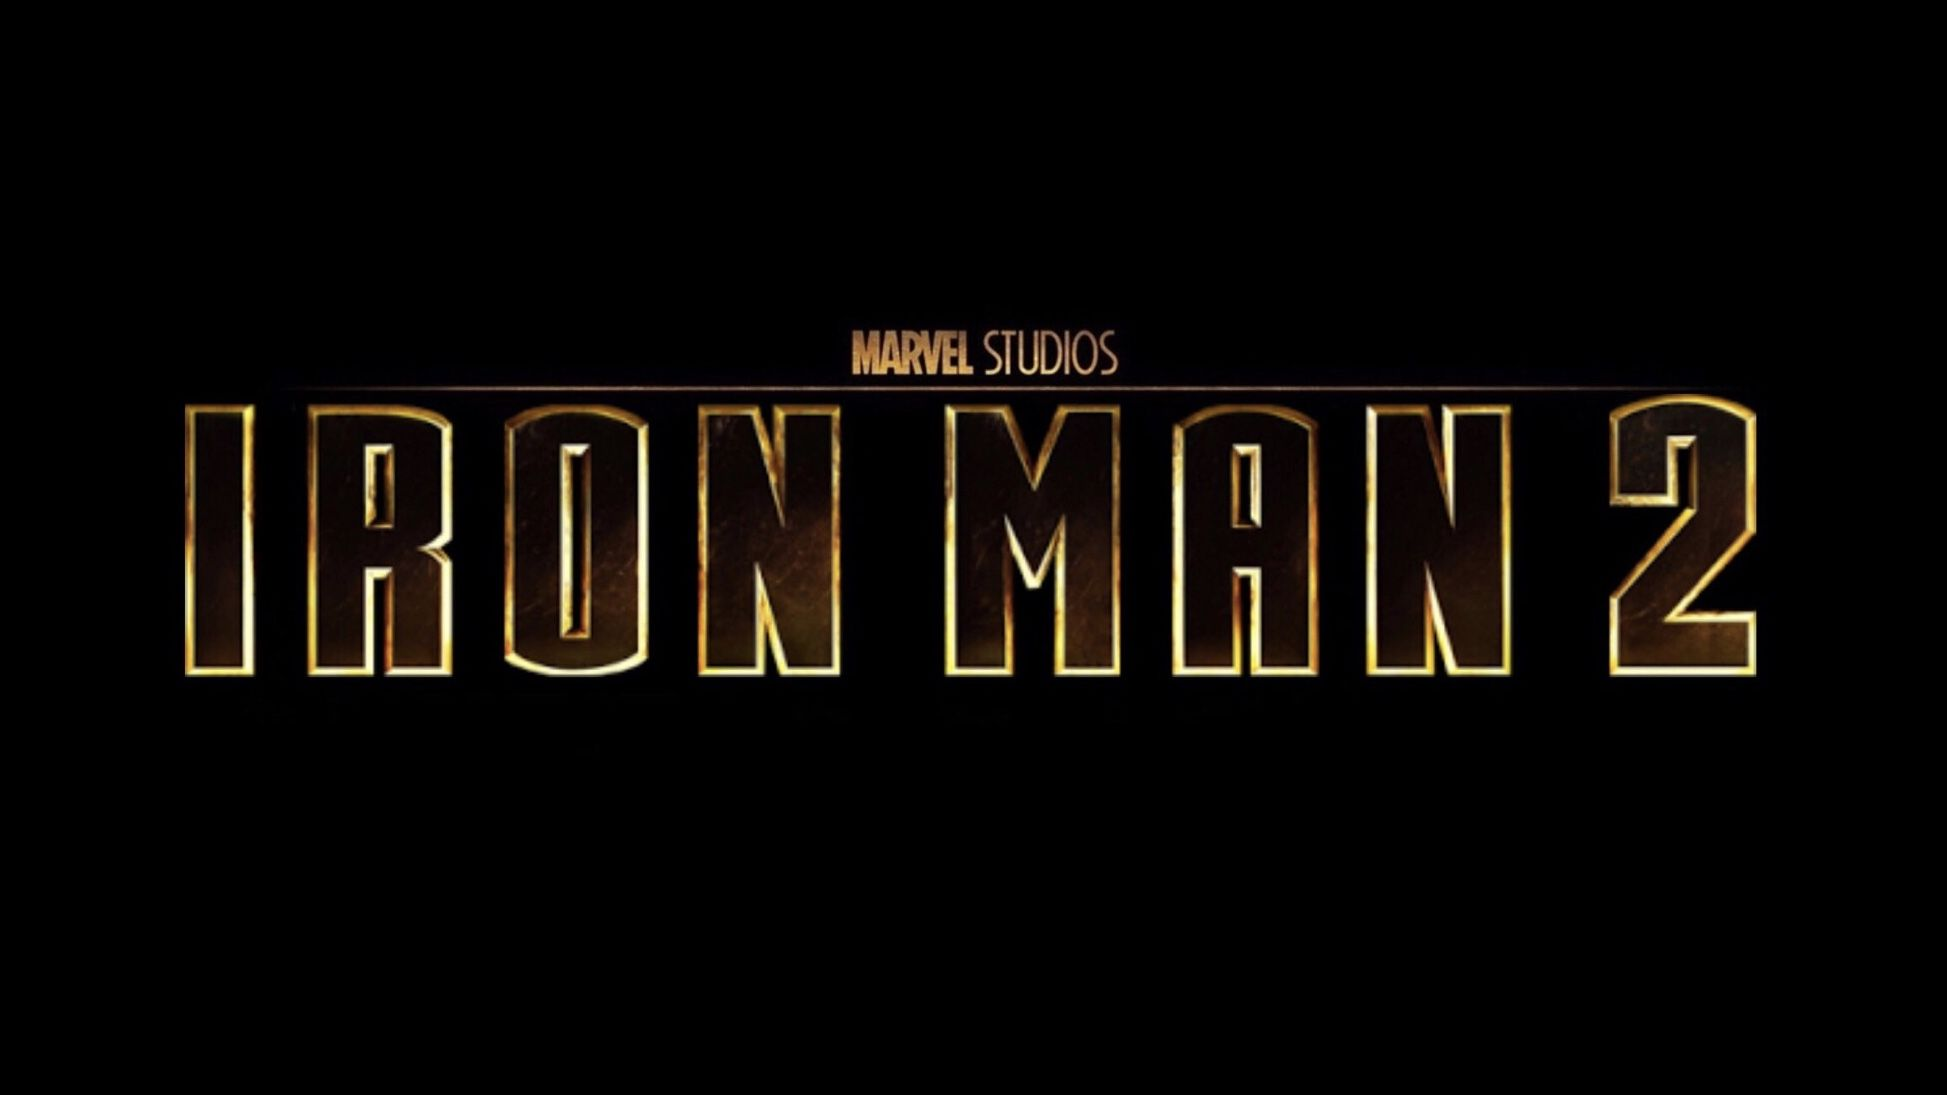 Iron Man 2 Logo.